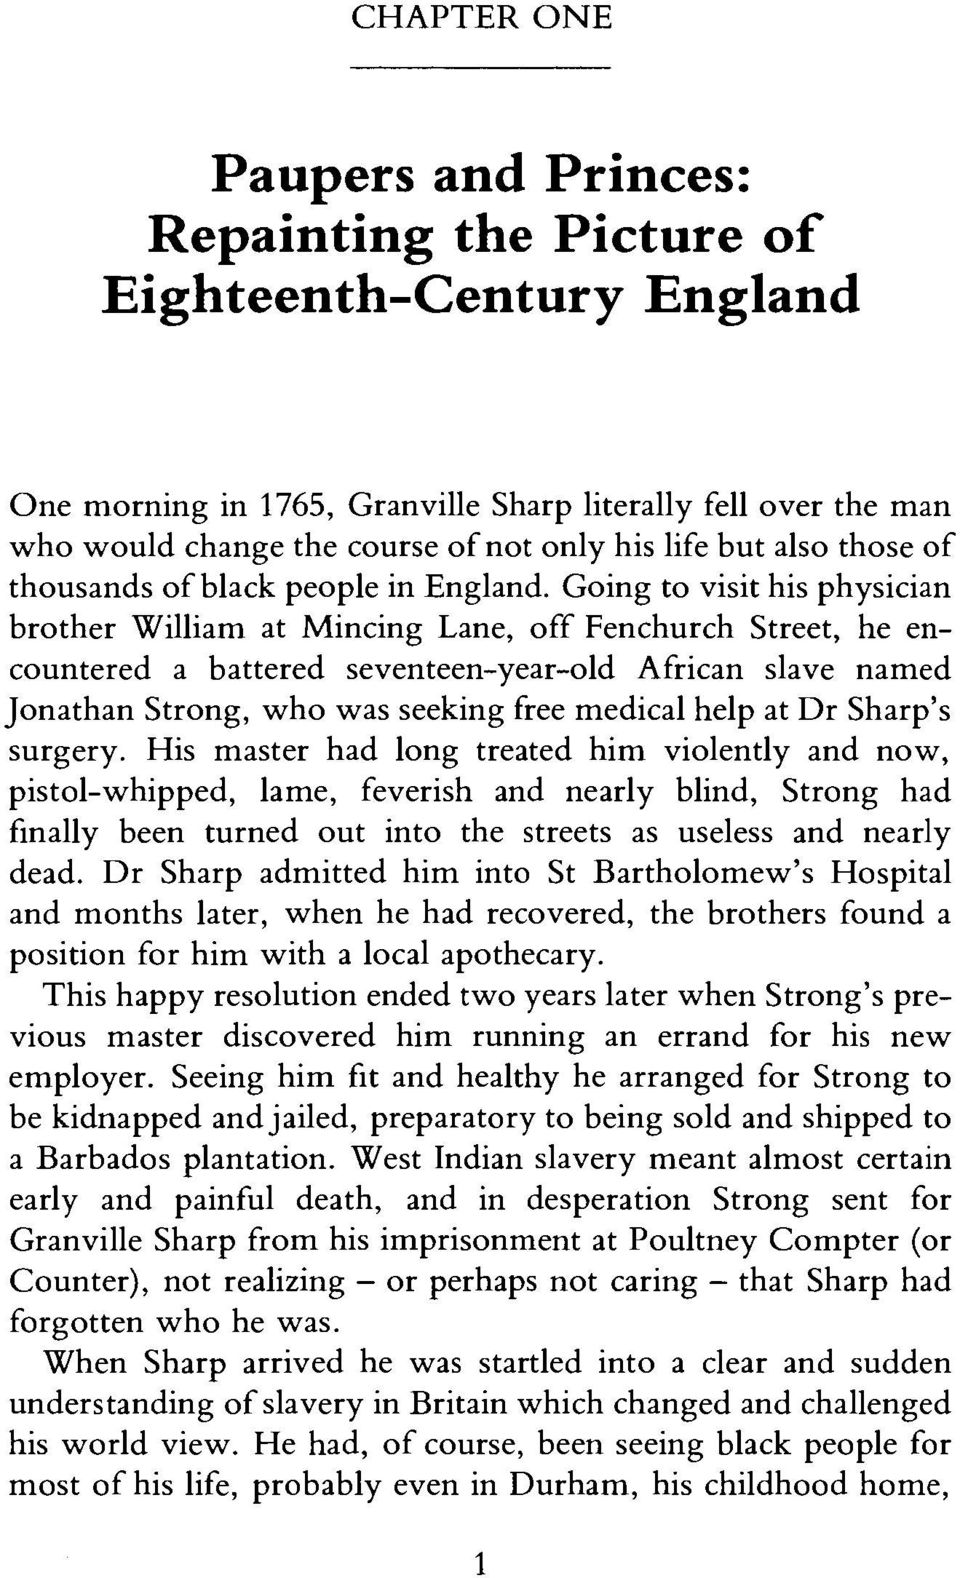 Going to visit his physician brother William at Mincing Lane, off Fenchurch Street, he encountered a battered seventeen-year-old African slave named Jonathan Strong, who was seeking free medical help